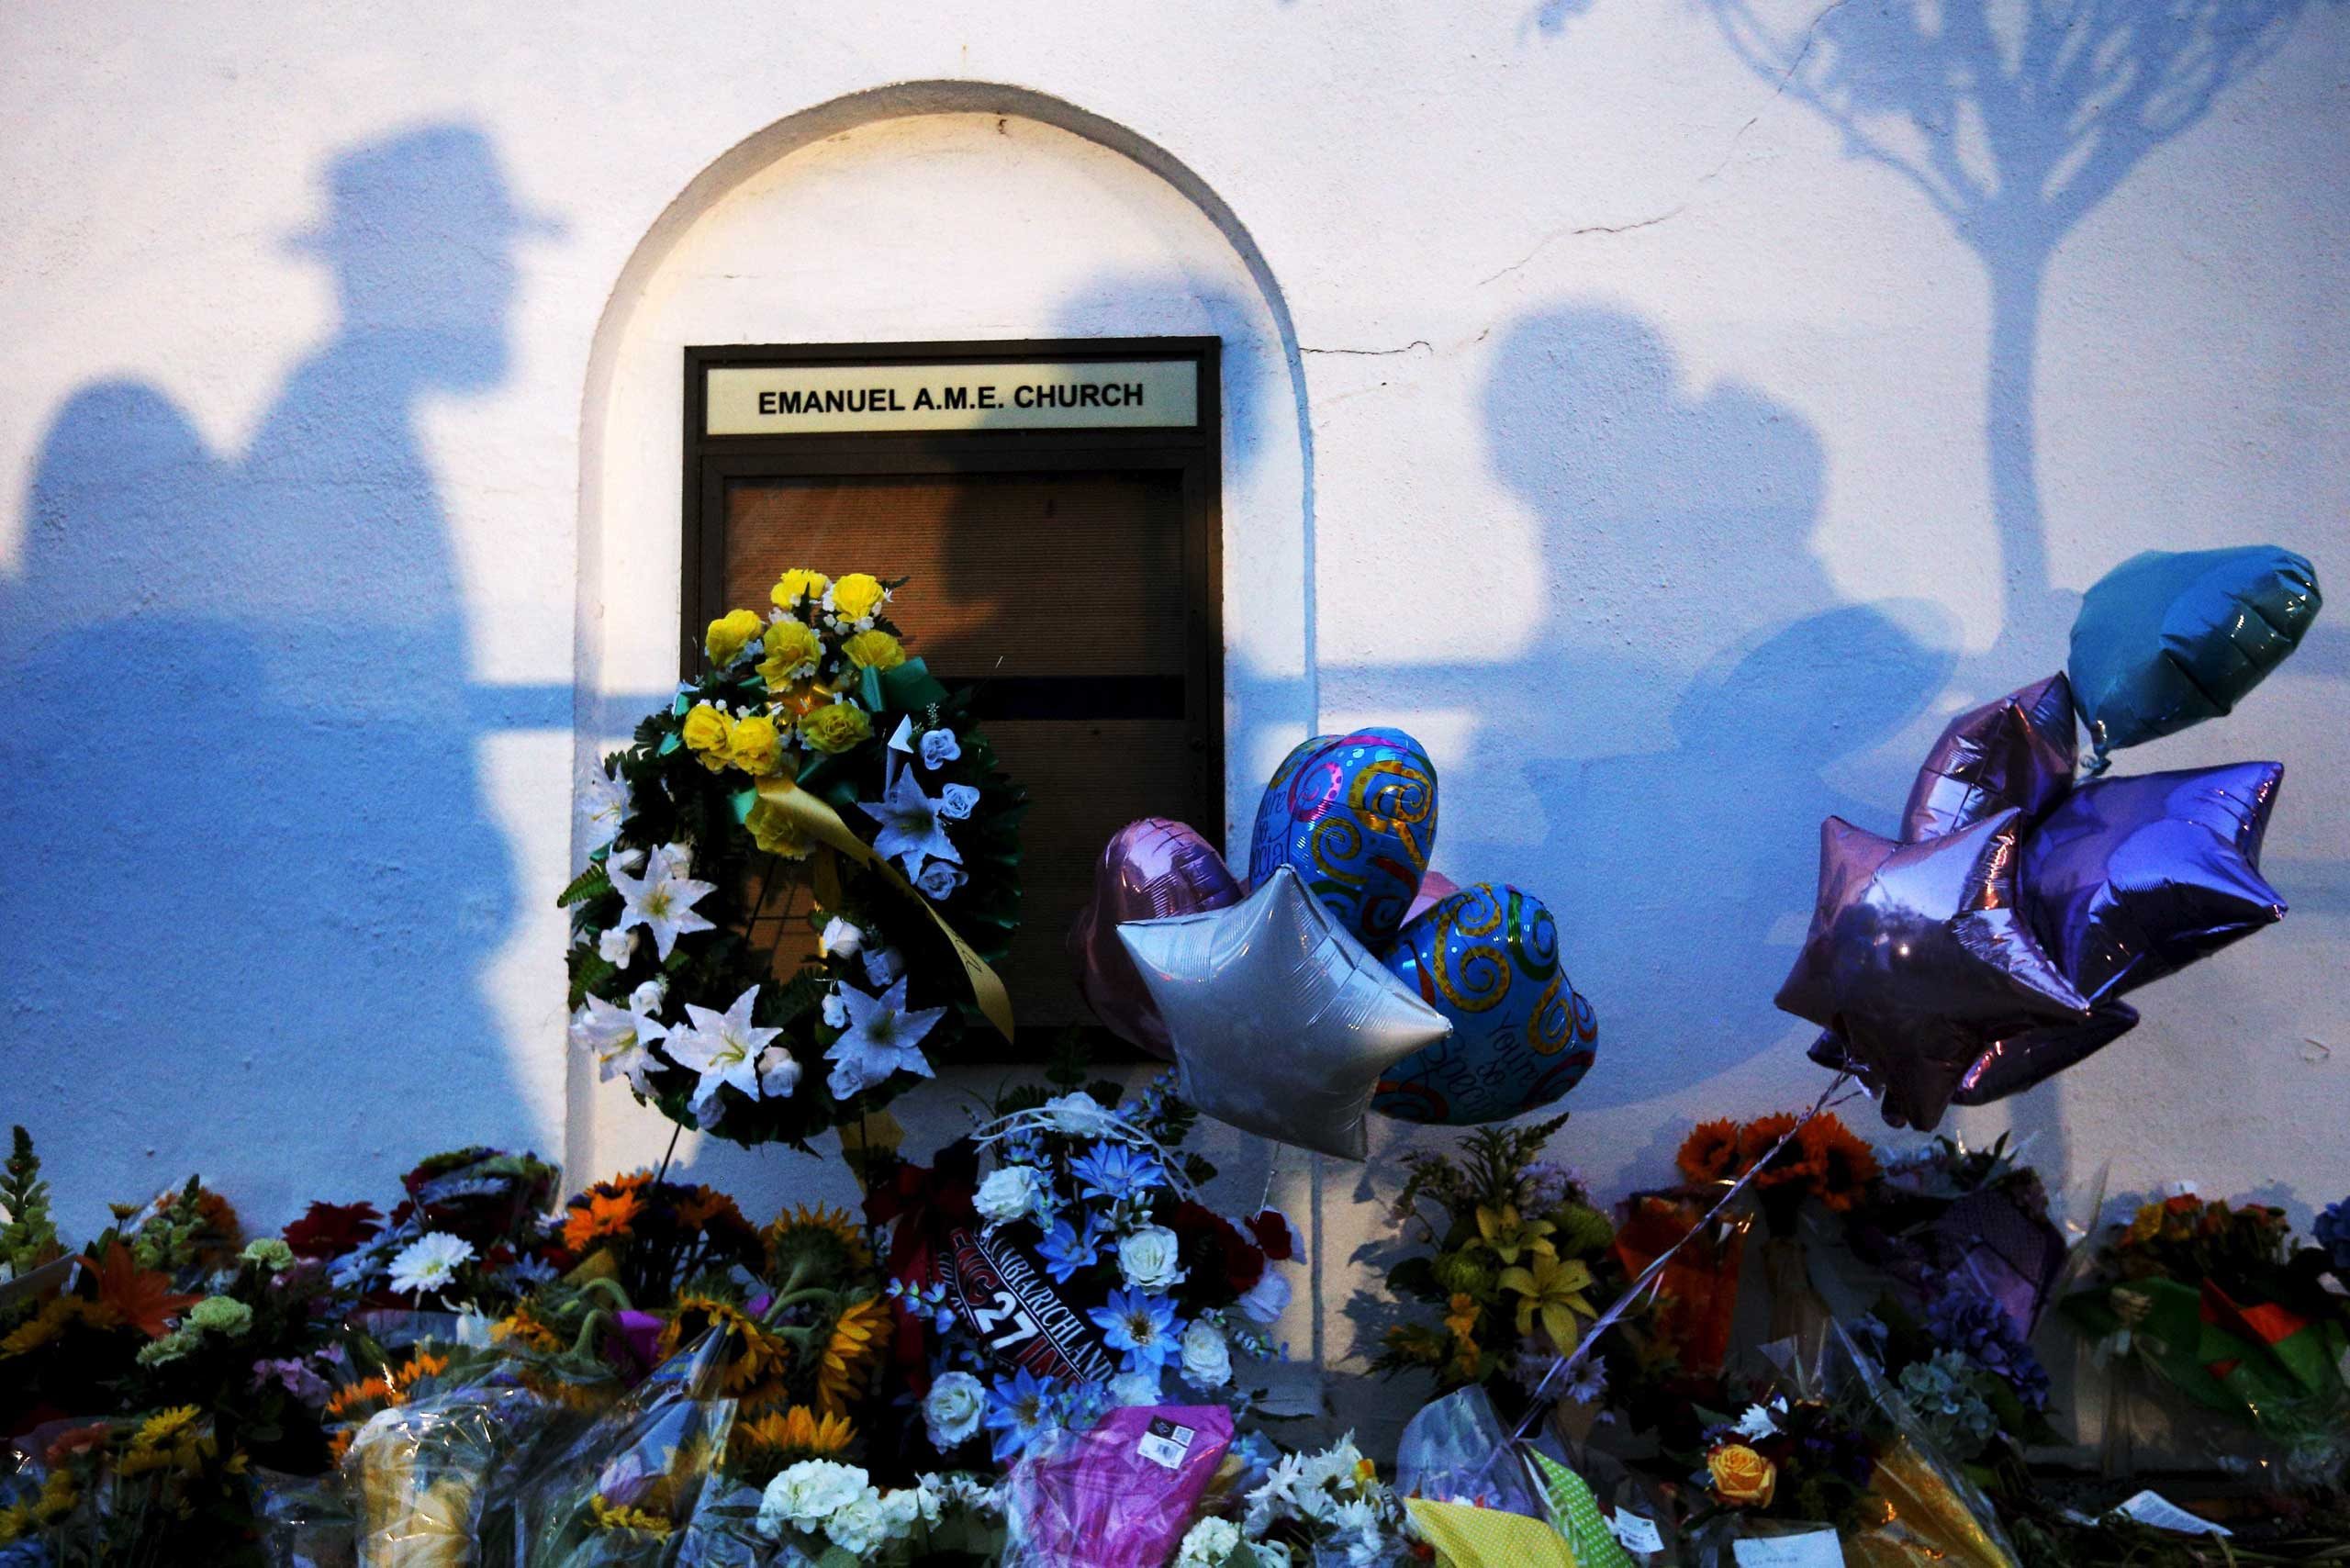 Mourners cast shadows on the walls and the makeshift memorial at the Emanuel African Methodist Episcopal Church in Charleston, S.C. on June 18, 2015.